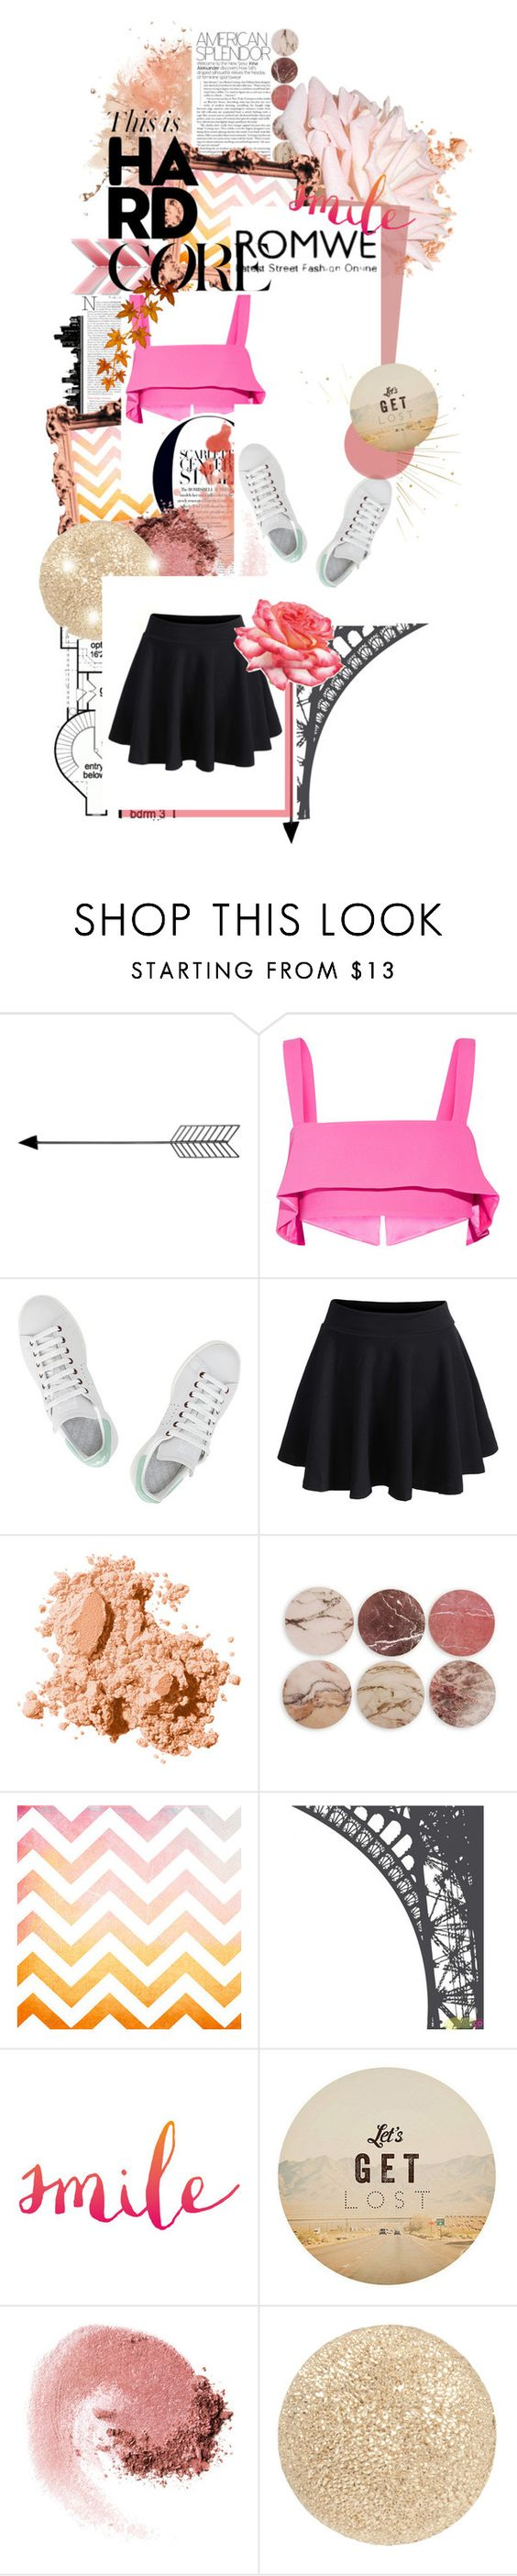 """""""CUTE"""" by halima-22 ❤ liked on Polyvore featuring Cushnie Et Ochs, adidas, Bobbi Brown Cosmetics, &K, GET LOST, NARS Cosmetics, Carolina Bucci and Universal Lighting and Decor"""